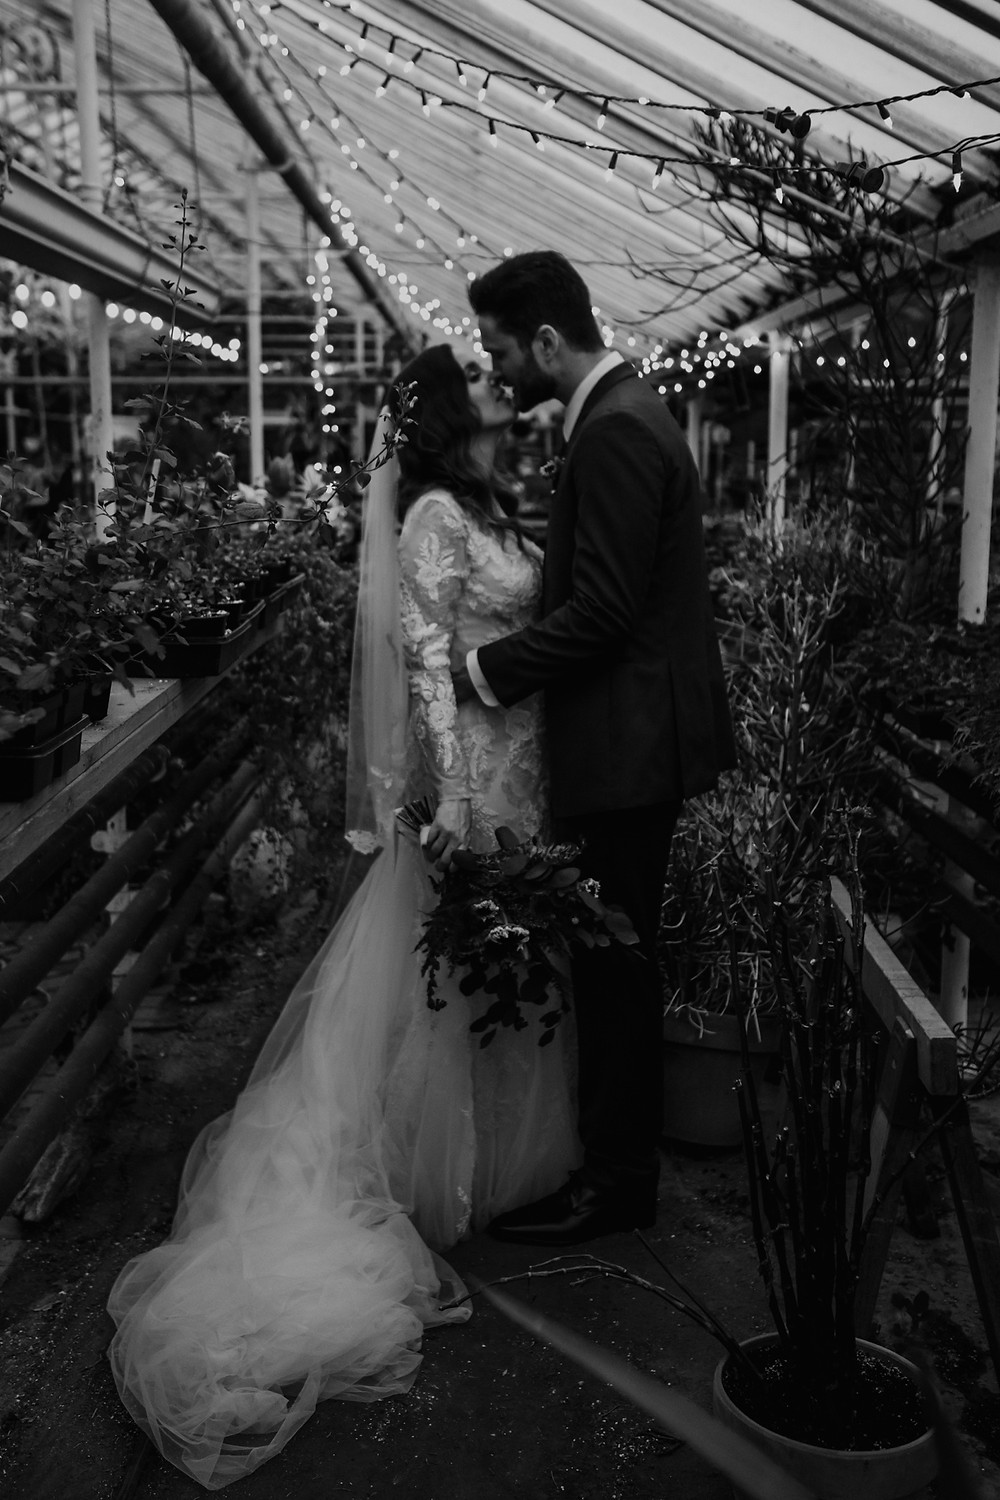 String lights hun in greenhouse for wedding ceremony. Photographed by Nicole Leanne Photography.